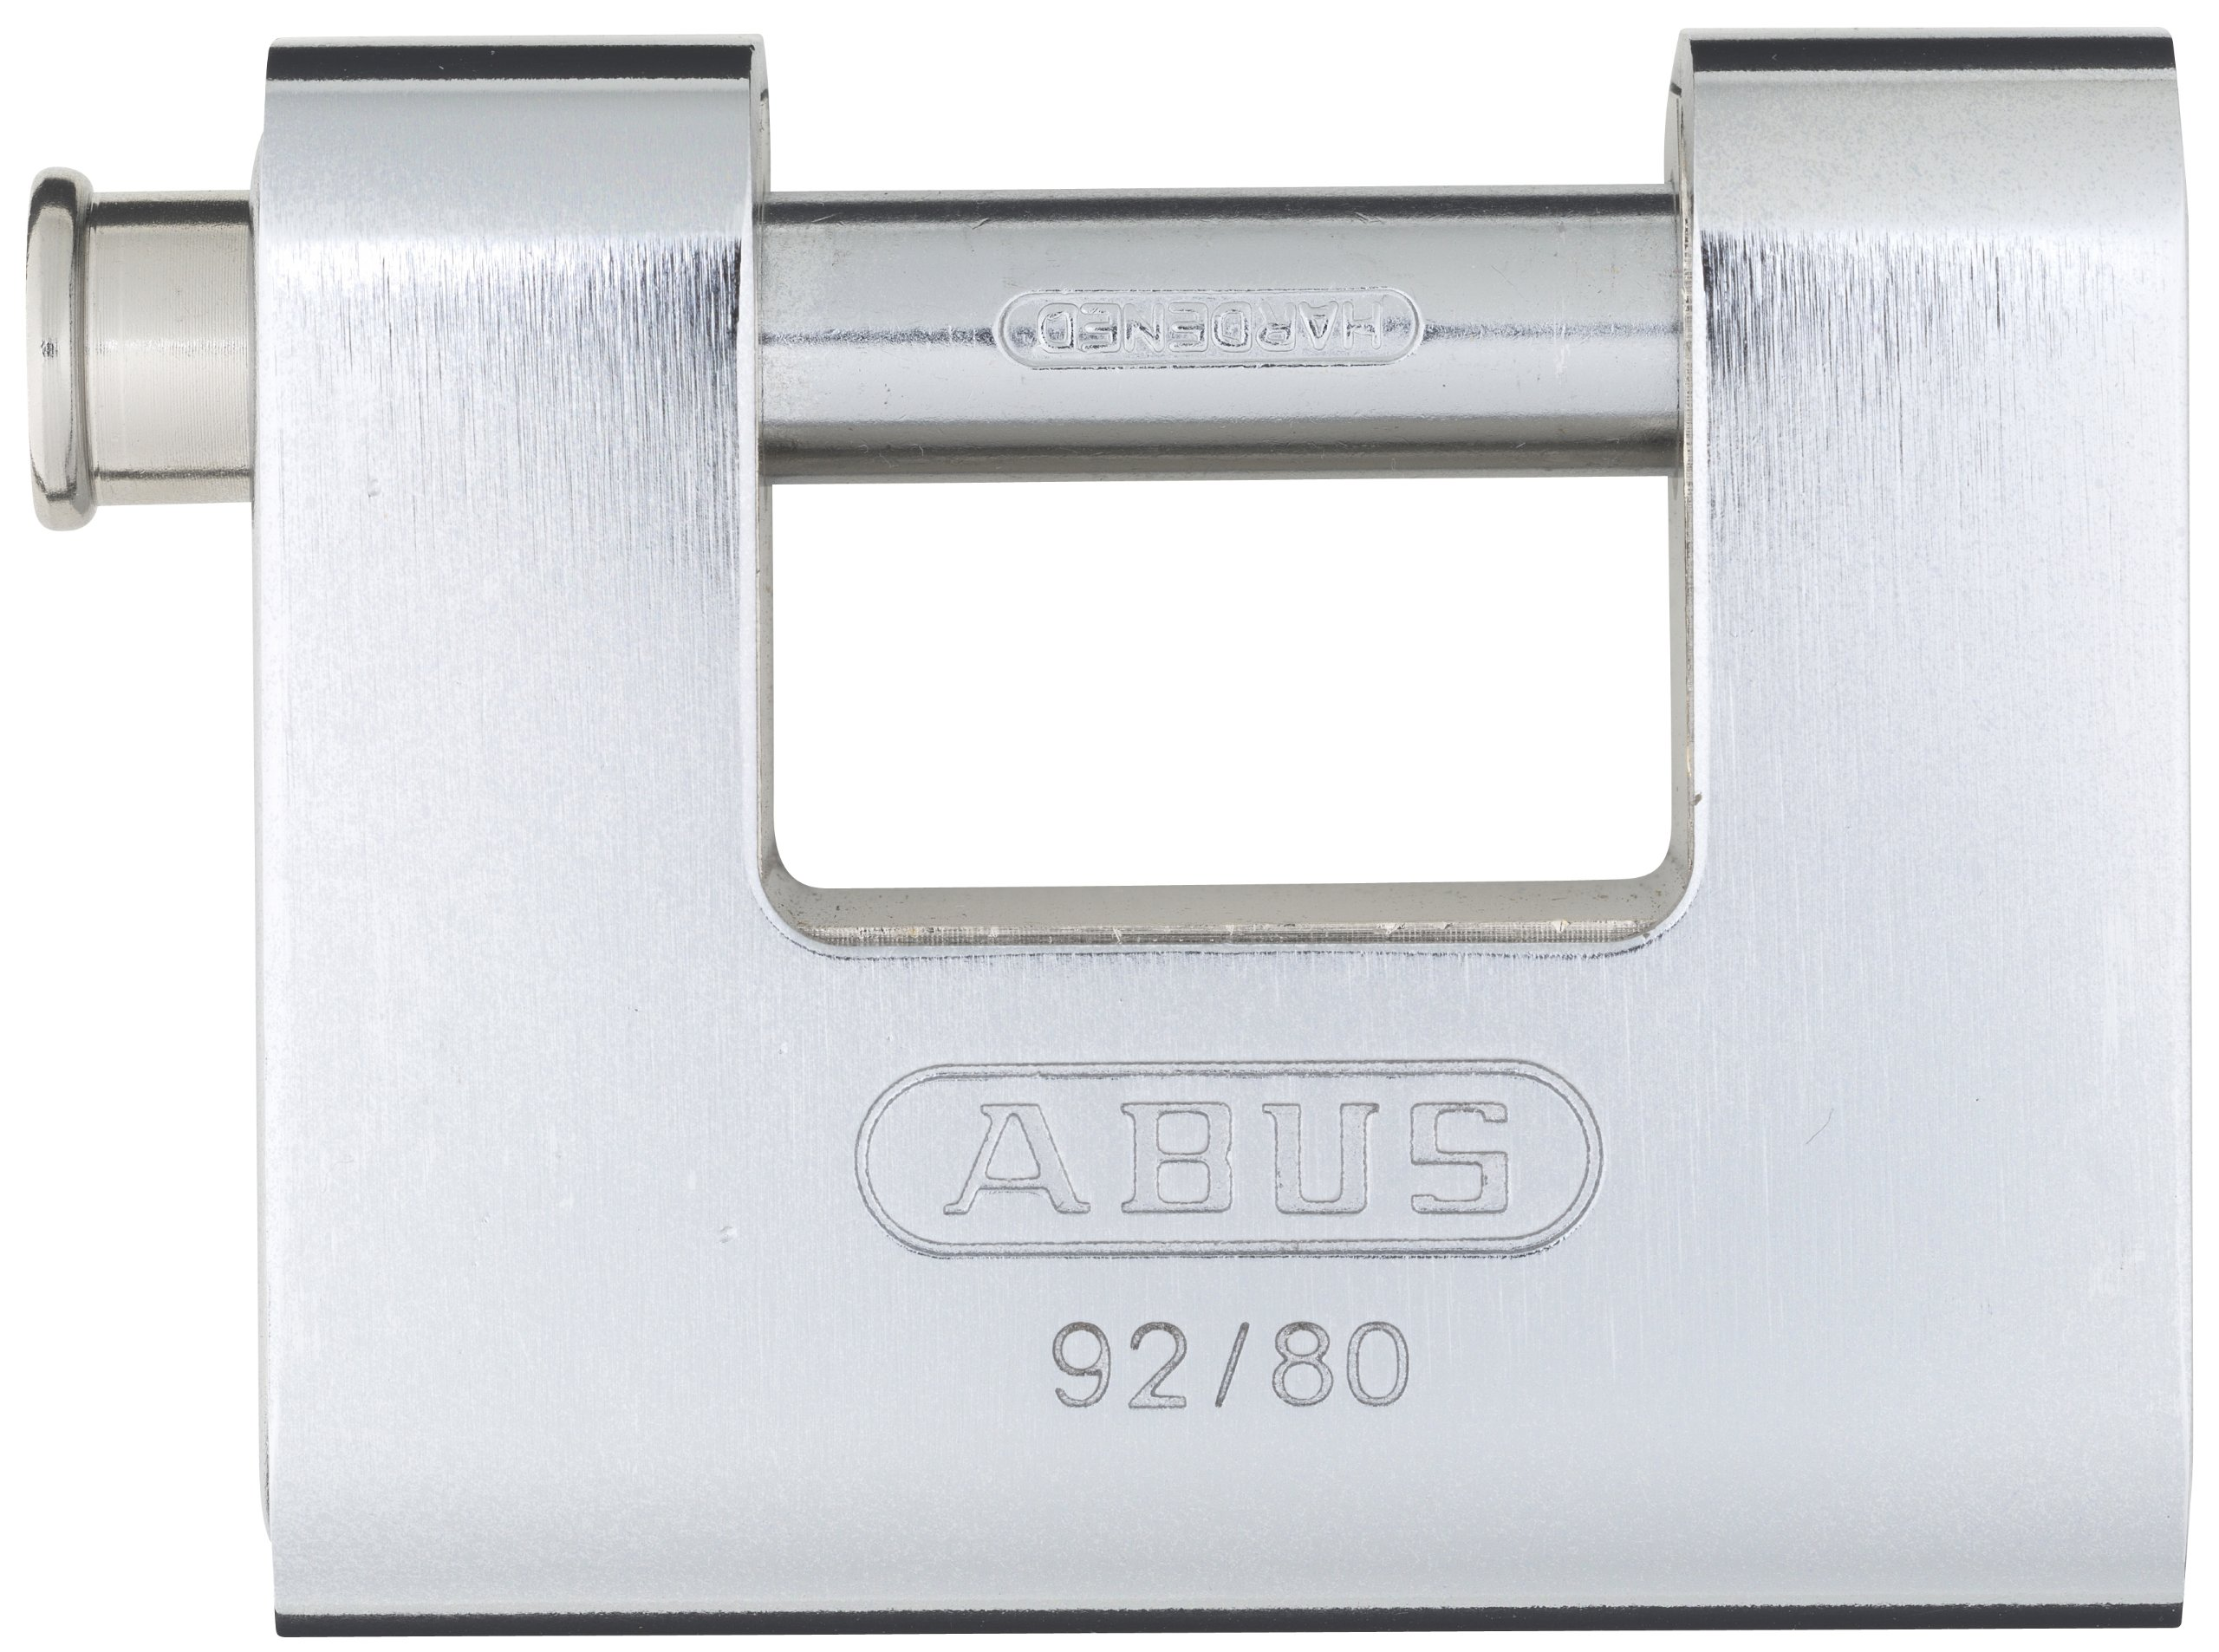 ABUS 92/80 KD All Weather Solid Brass with Steel Jacket Monoblock Keyed Different Padlock by ABUS